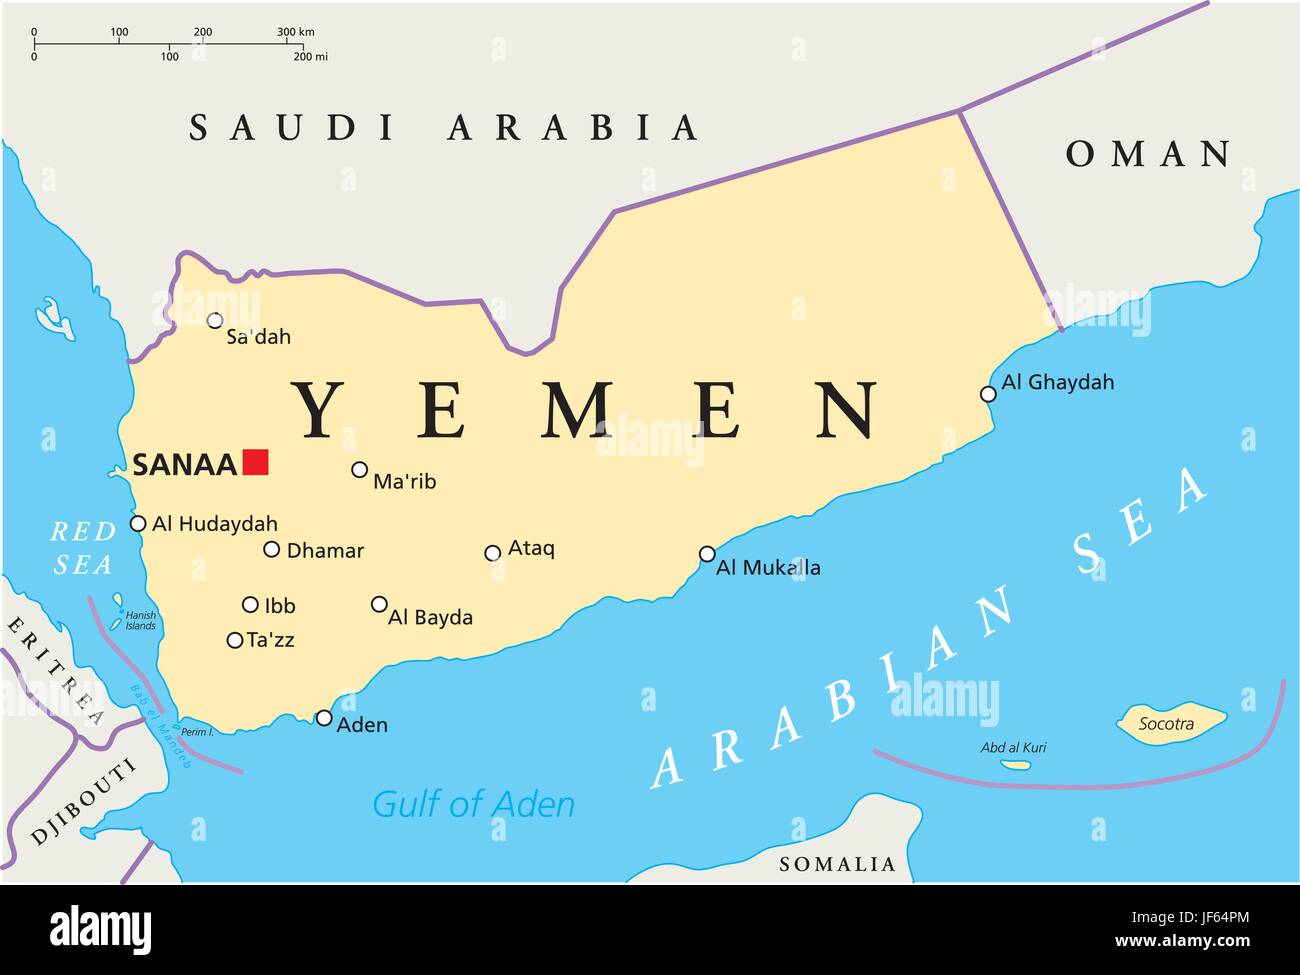 yemen map atlas map of the world political desert wasteland  - yemen map atlas map of the world political desert wasteland arab